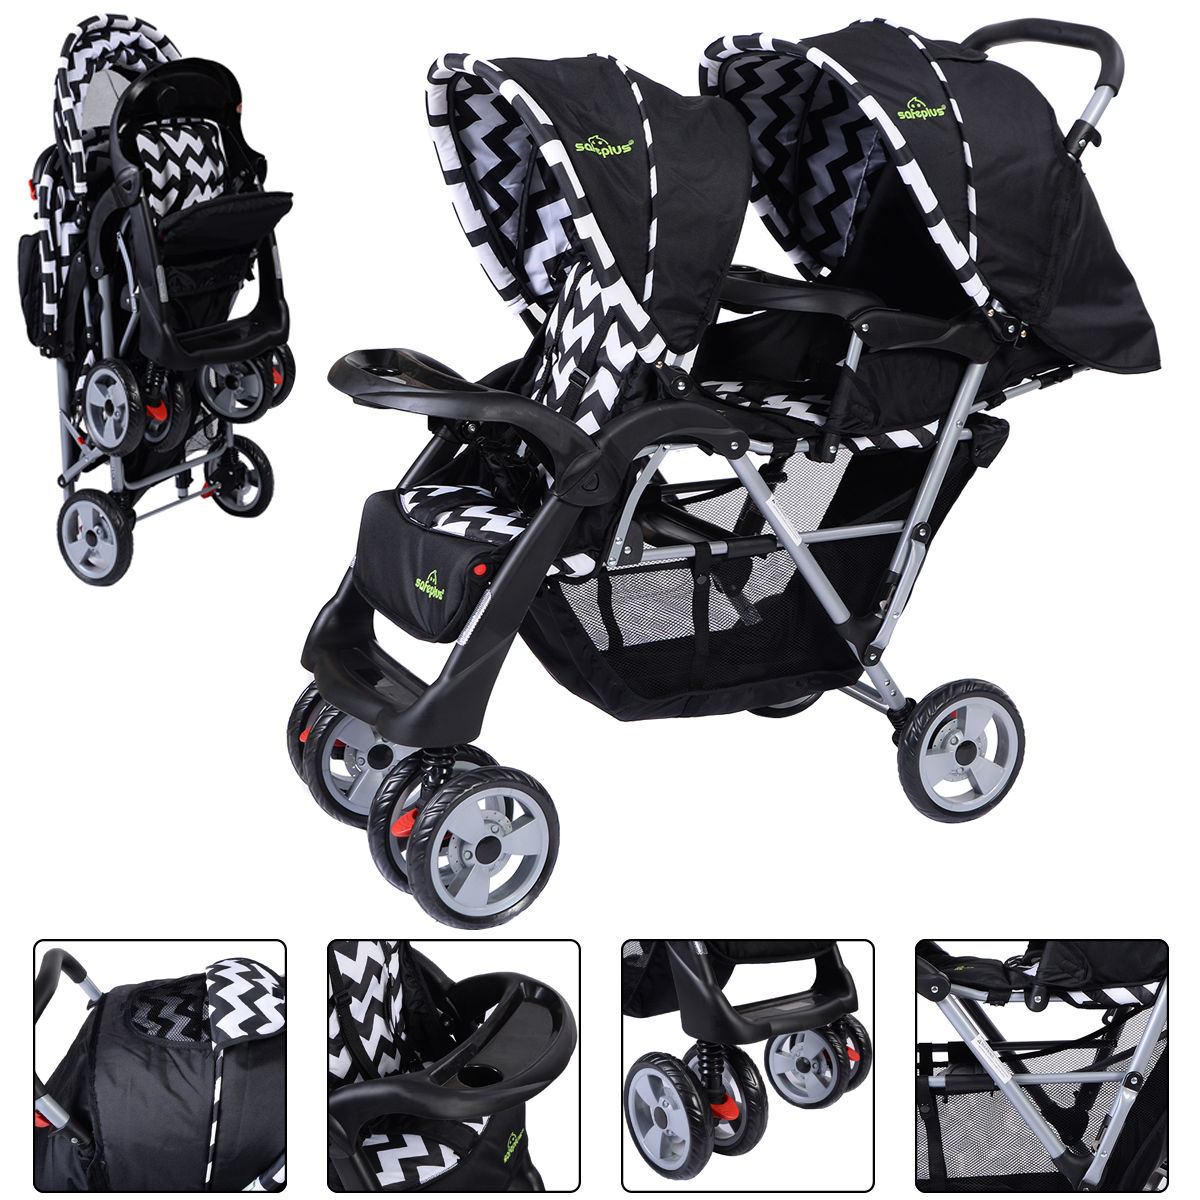 Foldable Twin Baby Double Stroller Kids Jogger Travel Infant Pushchair Black